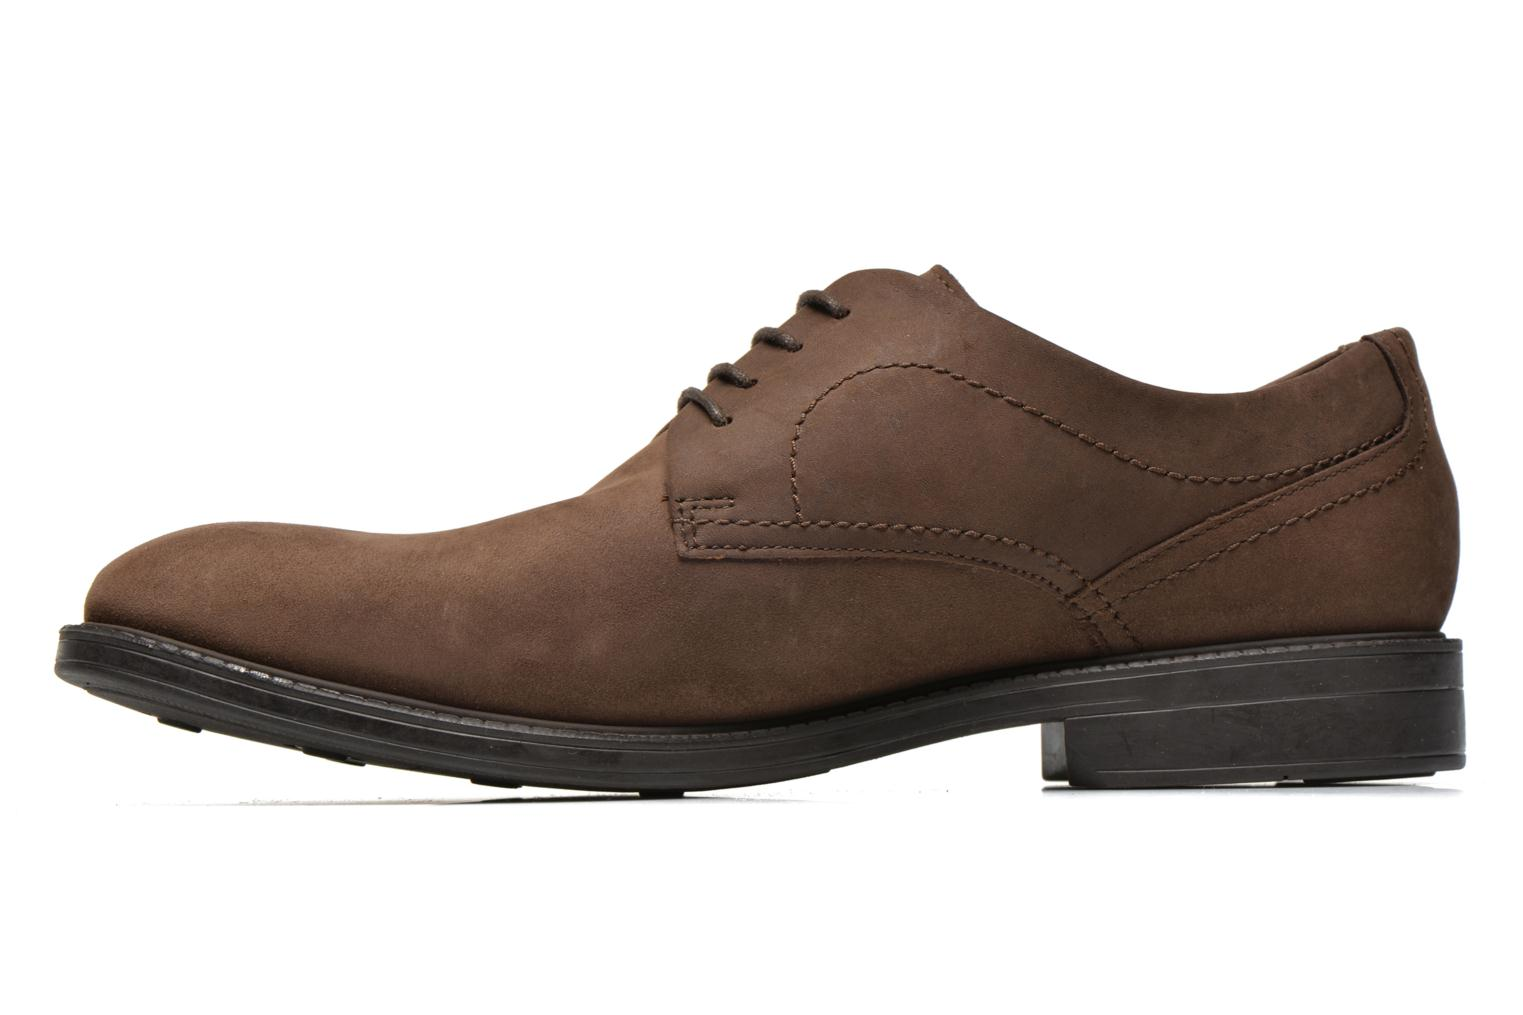 Chaussures à lacets Clarks Chilver Walk GTX Marron vue face